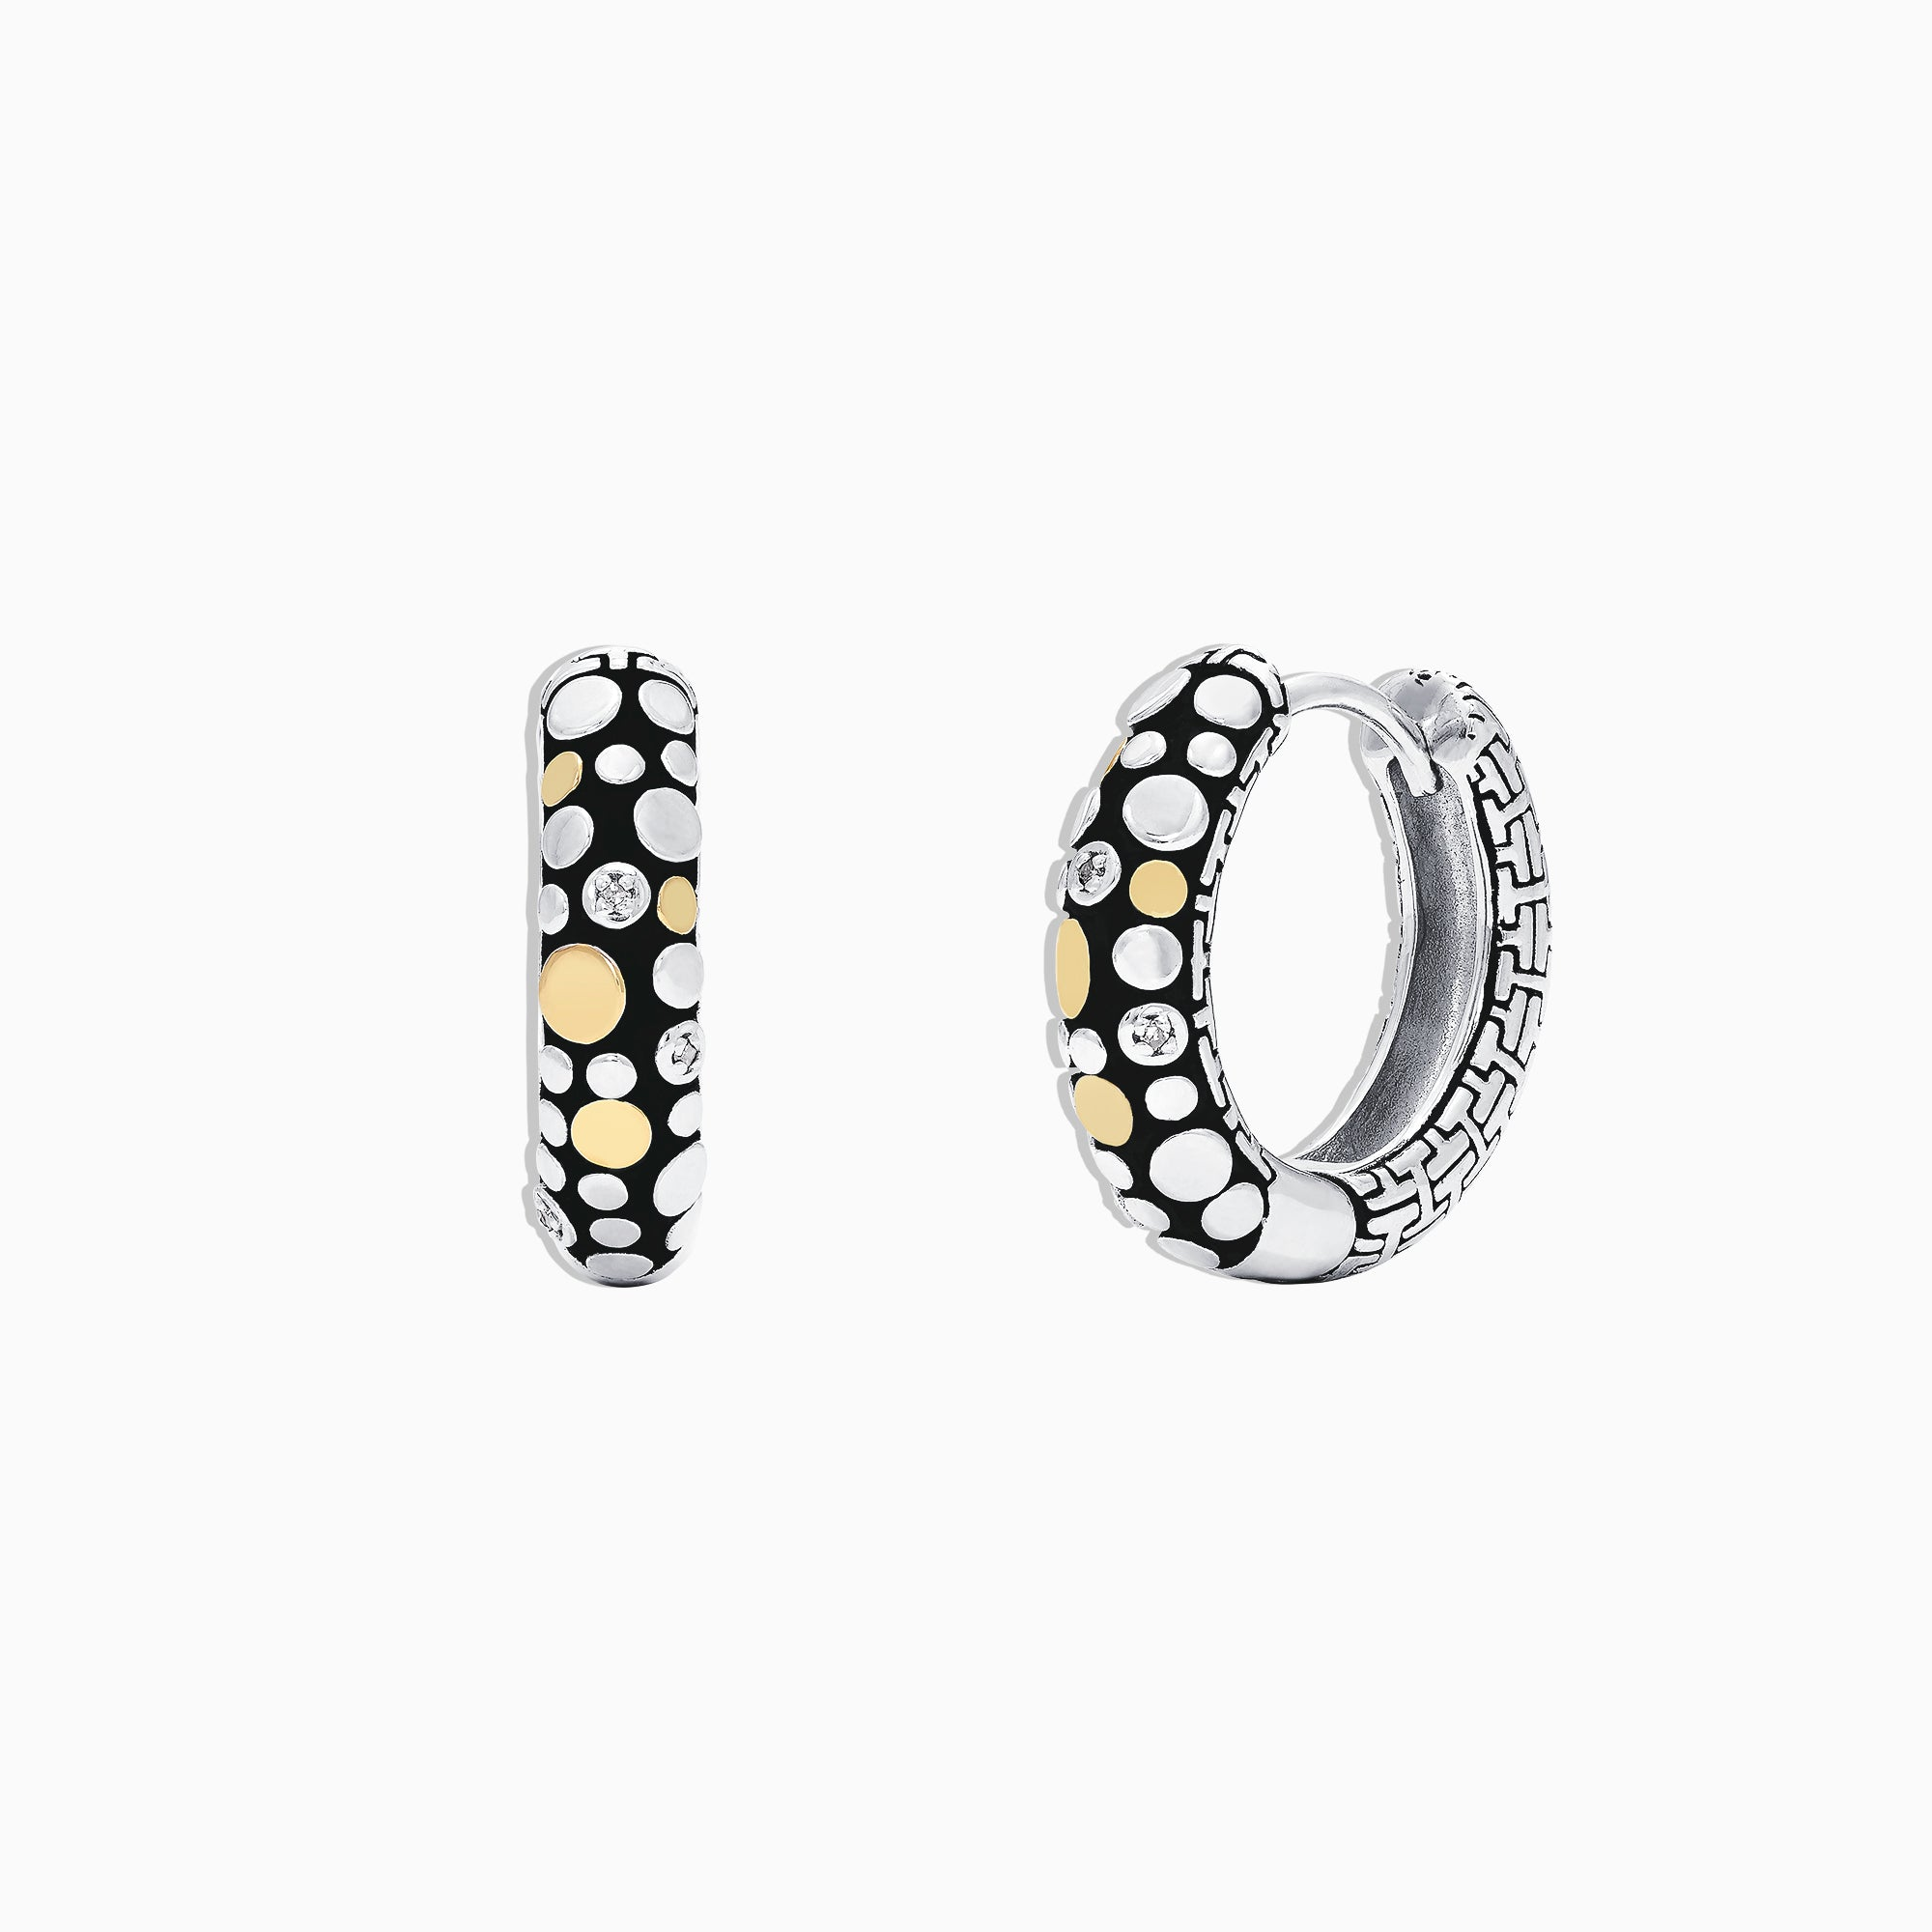 Effy 925 Sterling Silver & 18K Yellow Gold Diamond Hoop Earrings, 0.02 TCW